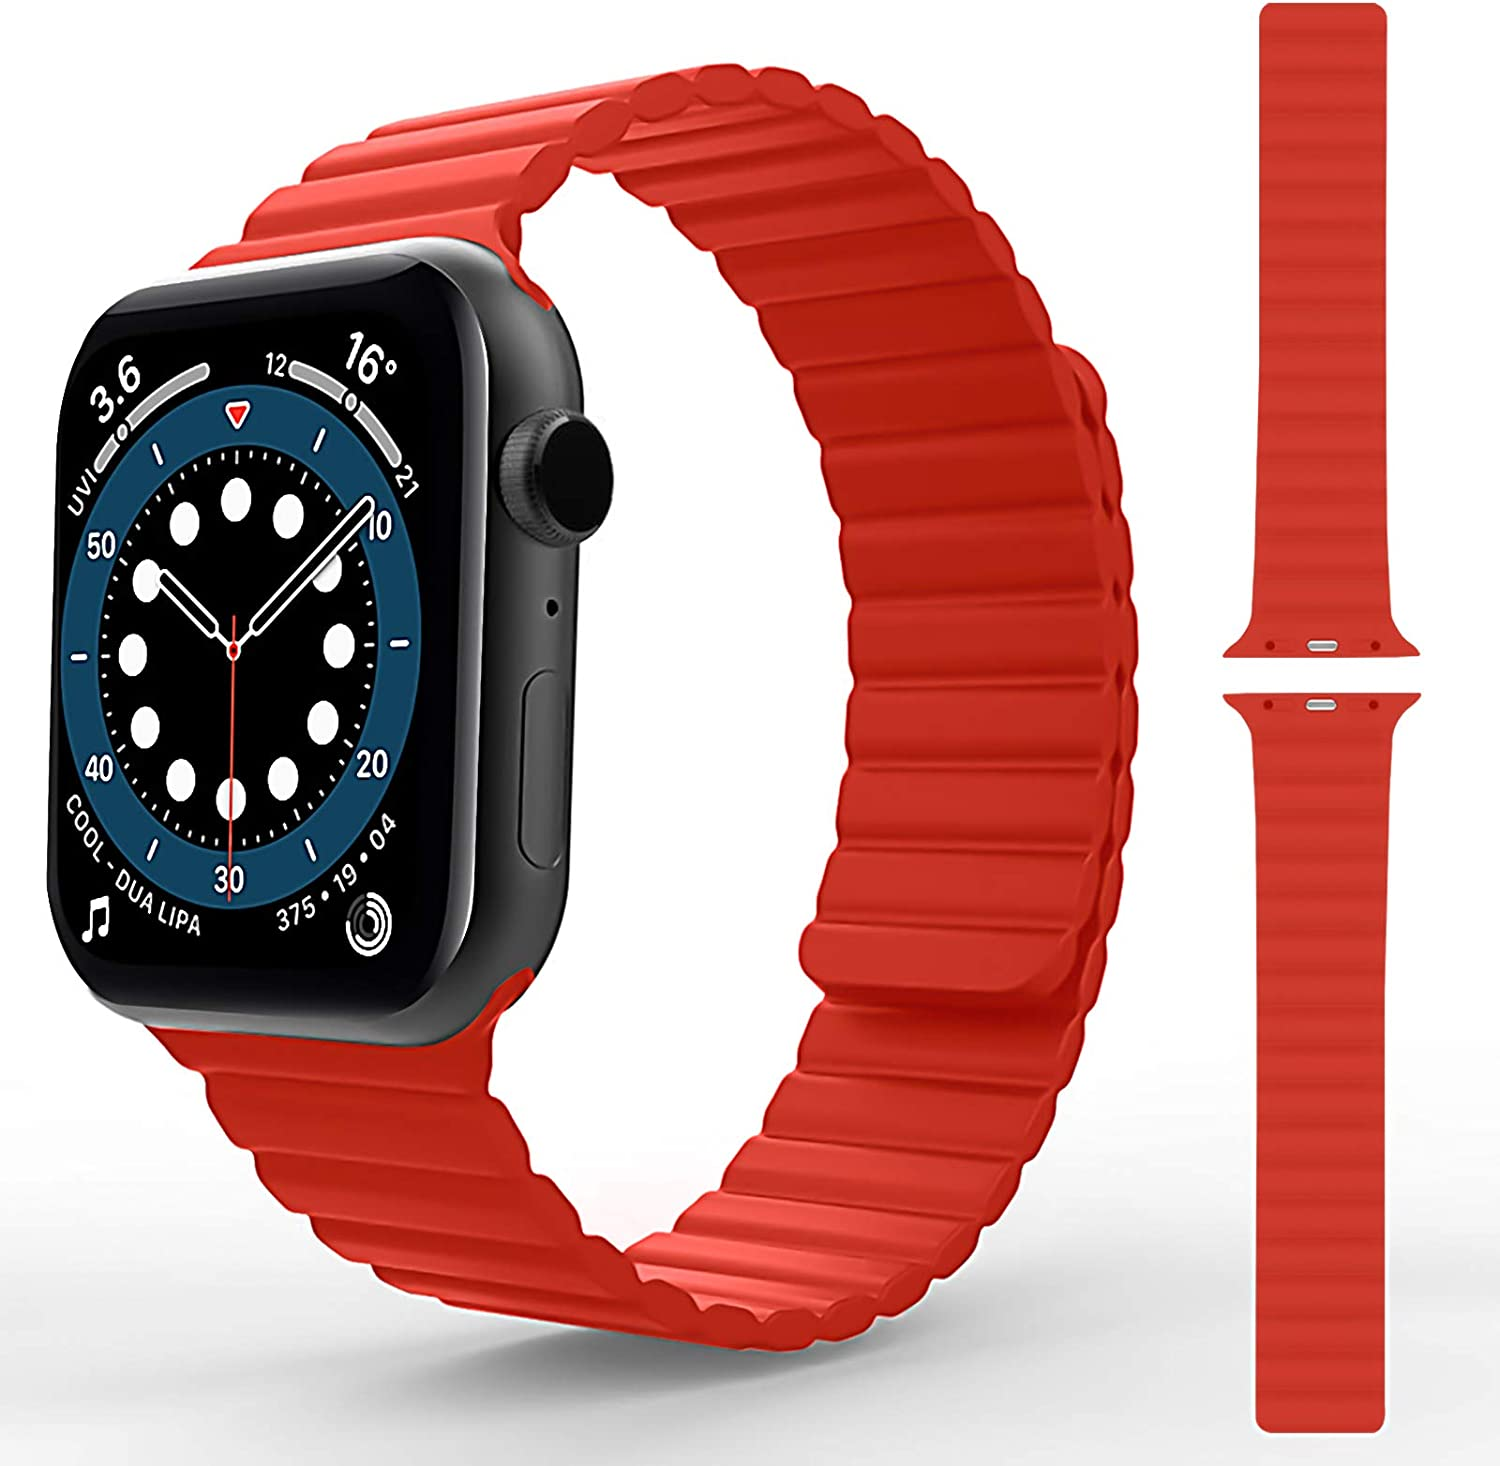 TOOVREN Magnetic Apple Watch Band 38mm 40mm 42 mm 44mm, Adjustable Silicone Apple Watch Bands Bracelet, Apple Watch Wristbands for Women Men iWatch Strap Series SE/6/5/4/3/2/1